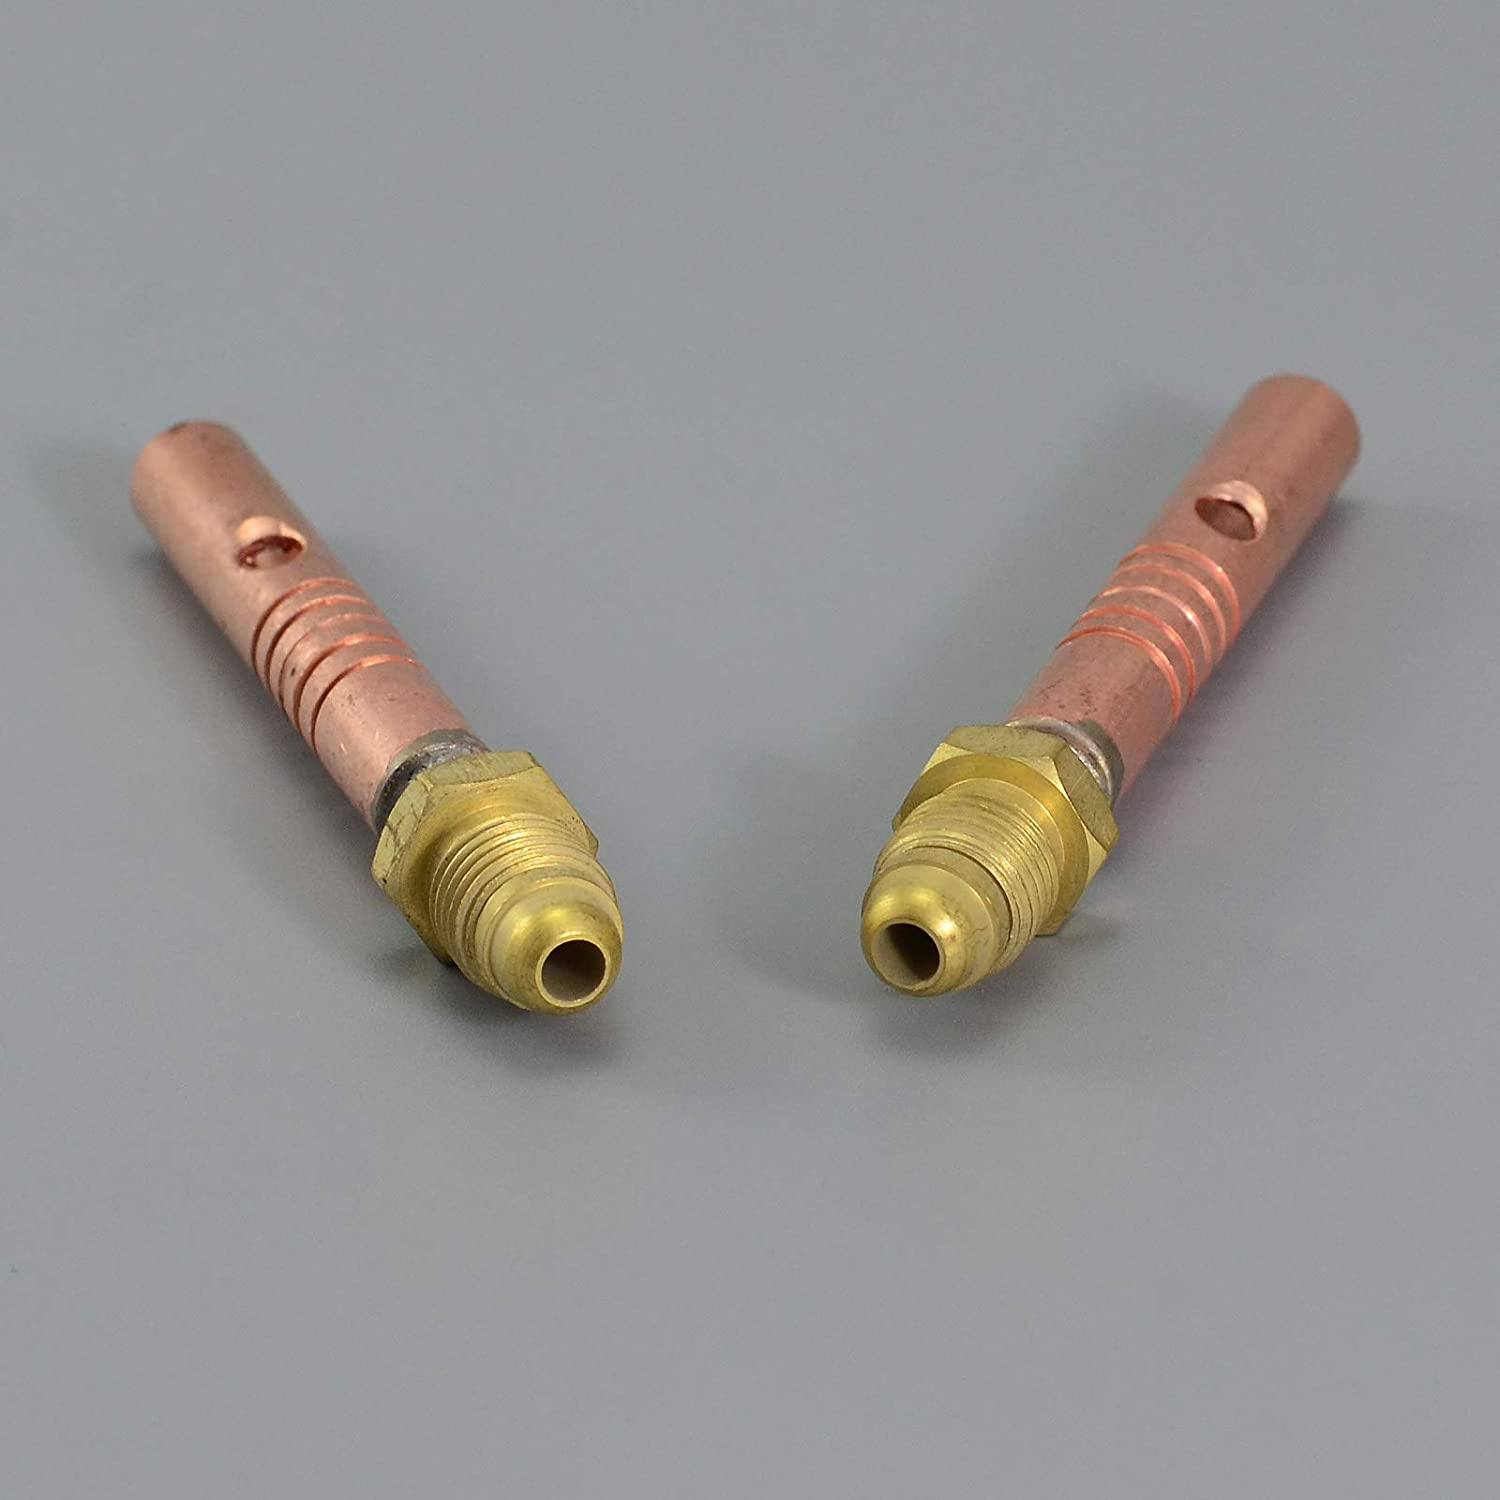 2pcs Replacement 57Y10 Gas/&Power cable Adapter WP-9 17 24G 24W TIG Welding Torch